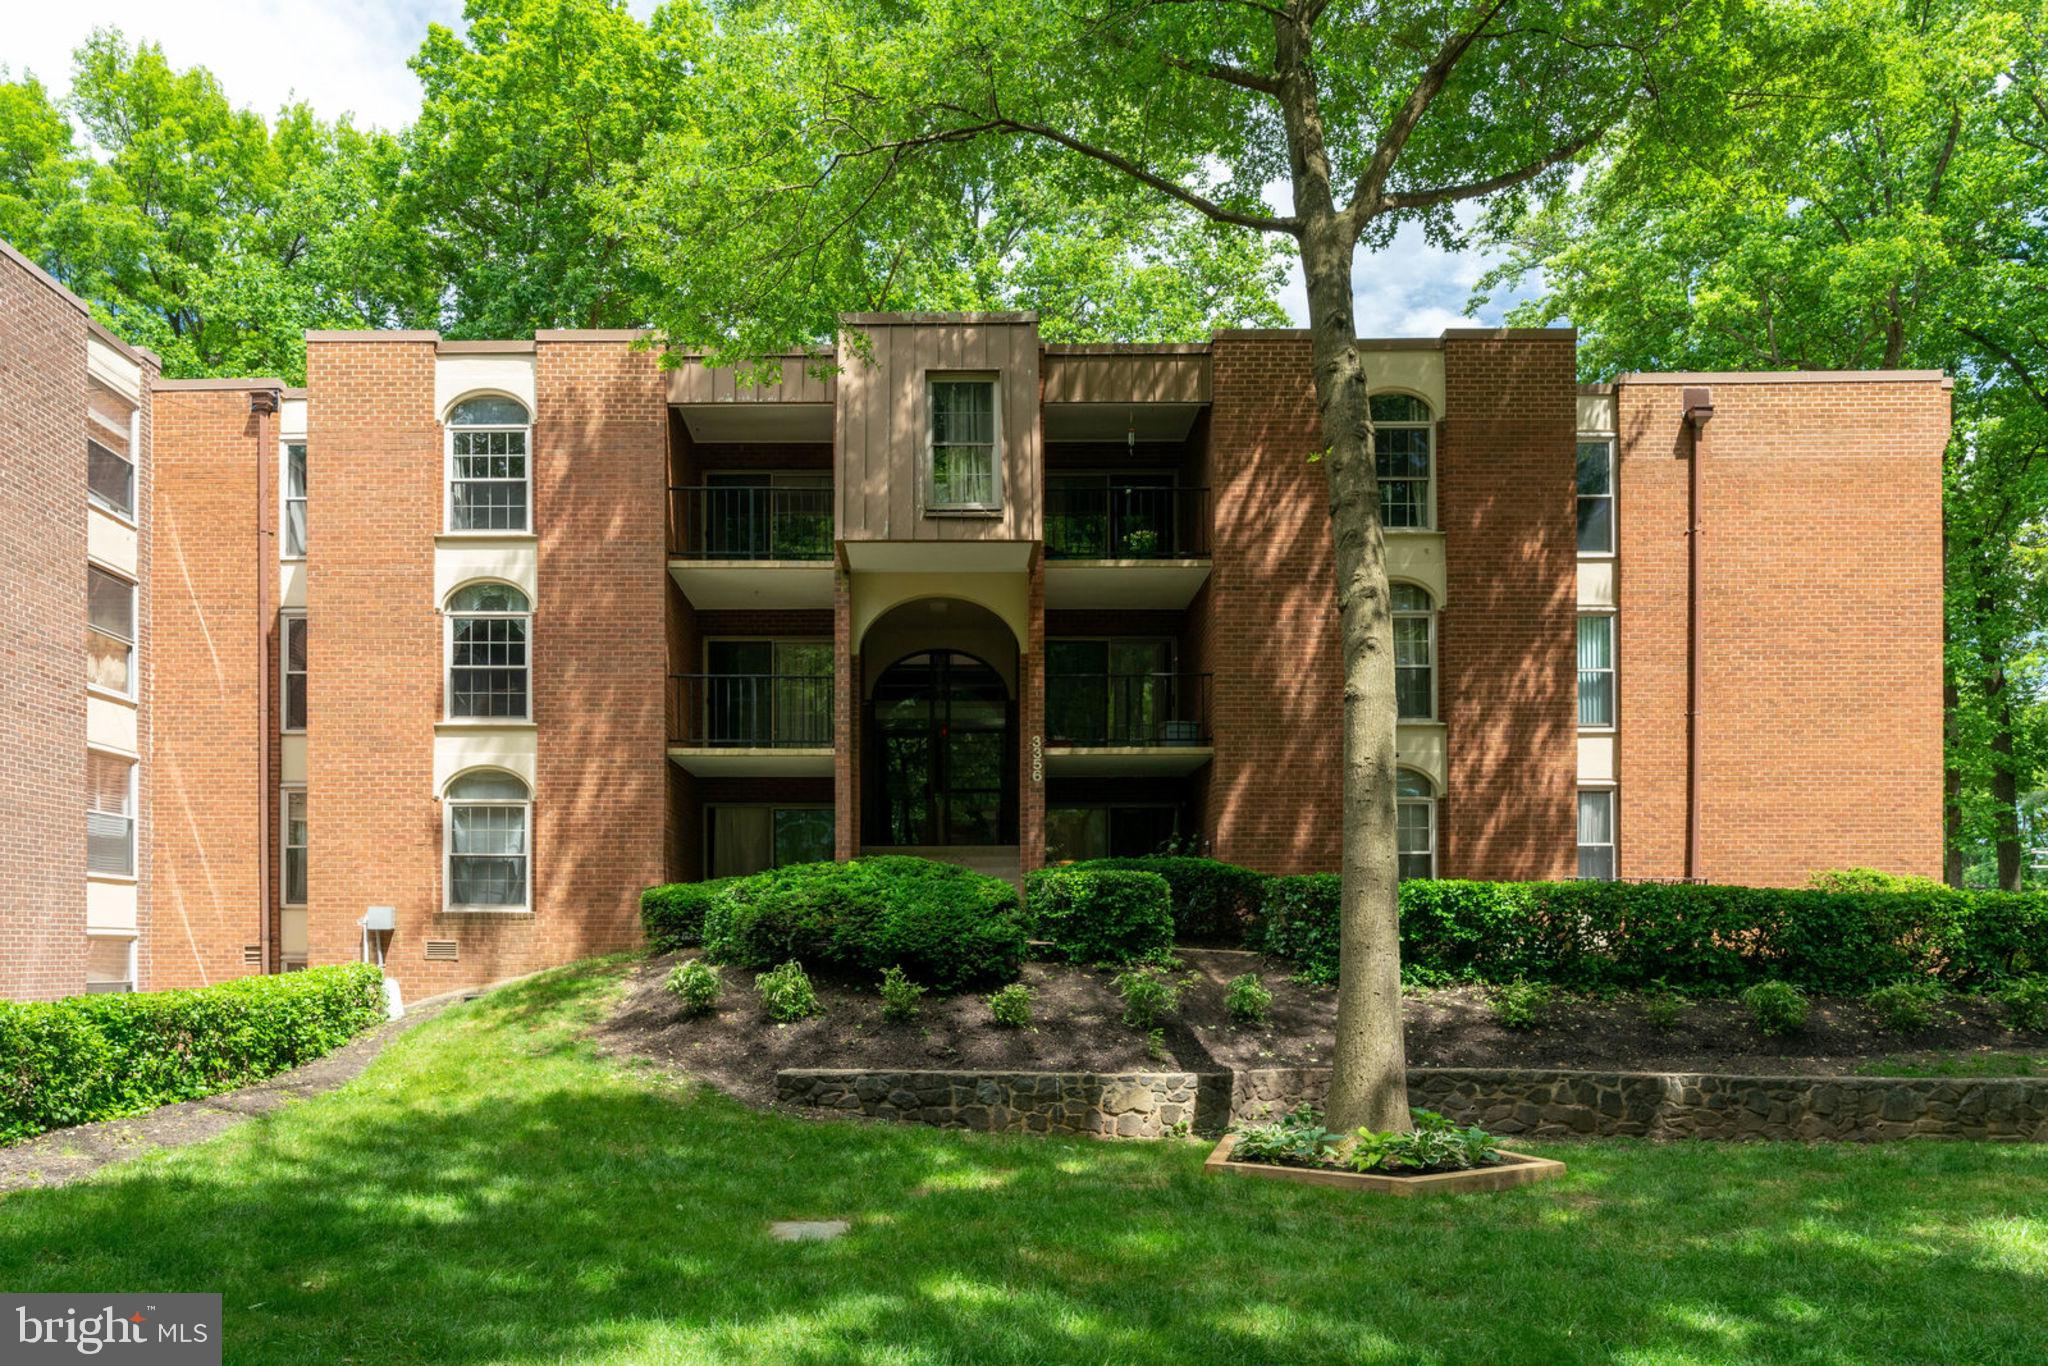 Charming 2 BR/1.5 Bath Condo at Woodburn Village.  Ready for your move-in with UPDATED kitchen and FRESH paint.  NEW 2019: Electrical Panel and Appliances.  NEW 2018: Carpet.   Unit is on the top floor providing privacy and tranquility as your balcony faces into the center garden and courtyard.  Condo Fee includes ALL utilities.  Easy access to Rt 50, I-495, I-66, Mosaic District and Tyson's Corner, and a short walk to metro bus at the Inova Fairfax Hospital.  You're right across from Pine Ridge Park with a community garden (Bo White Garden) managed by Fairfax County Authority. Assigned parking space #168, Storage Unit #17.